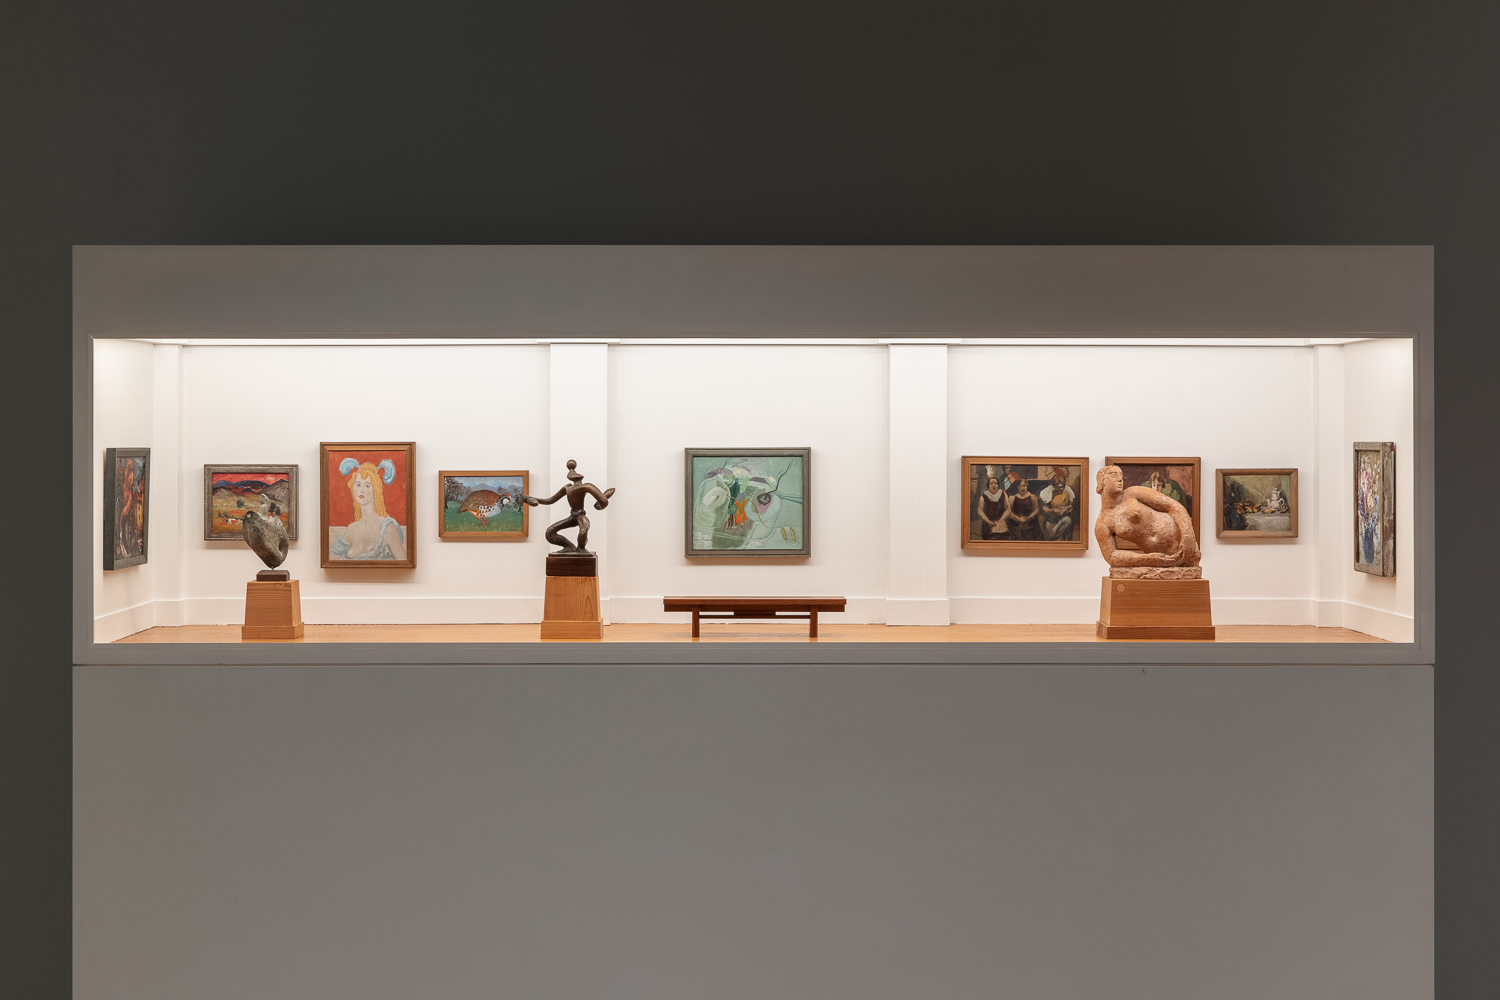 A model art gallery with white walls and a wooden flooring, filled with miniature paintings, sculptures and a bench.